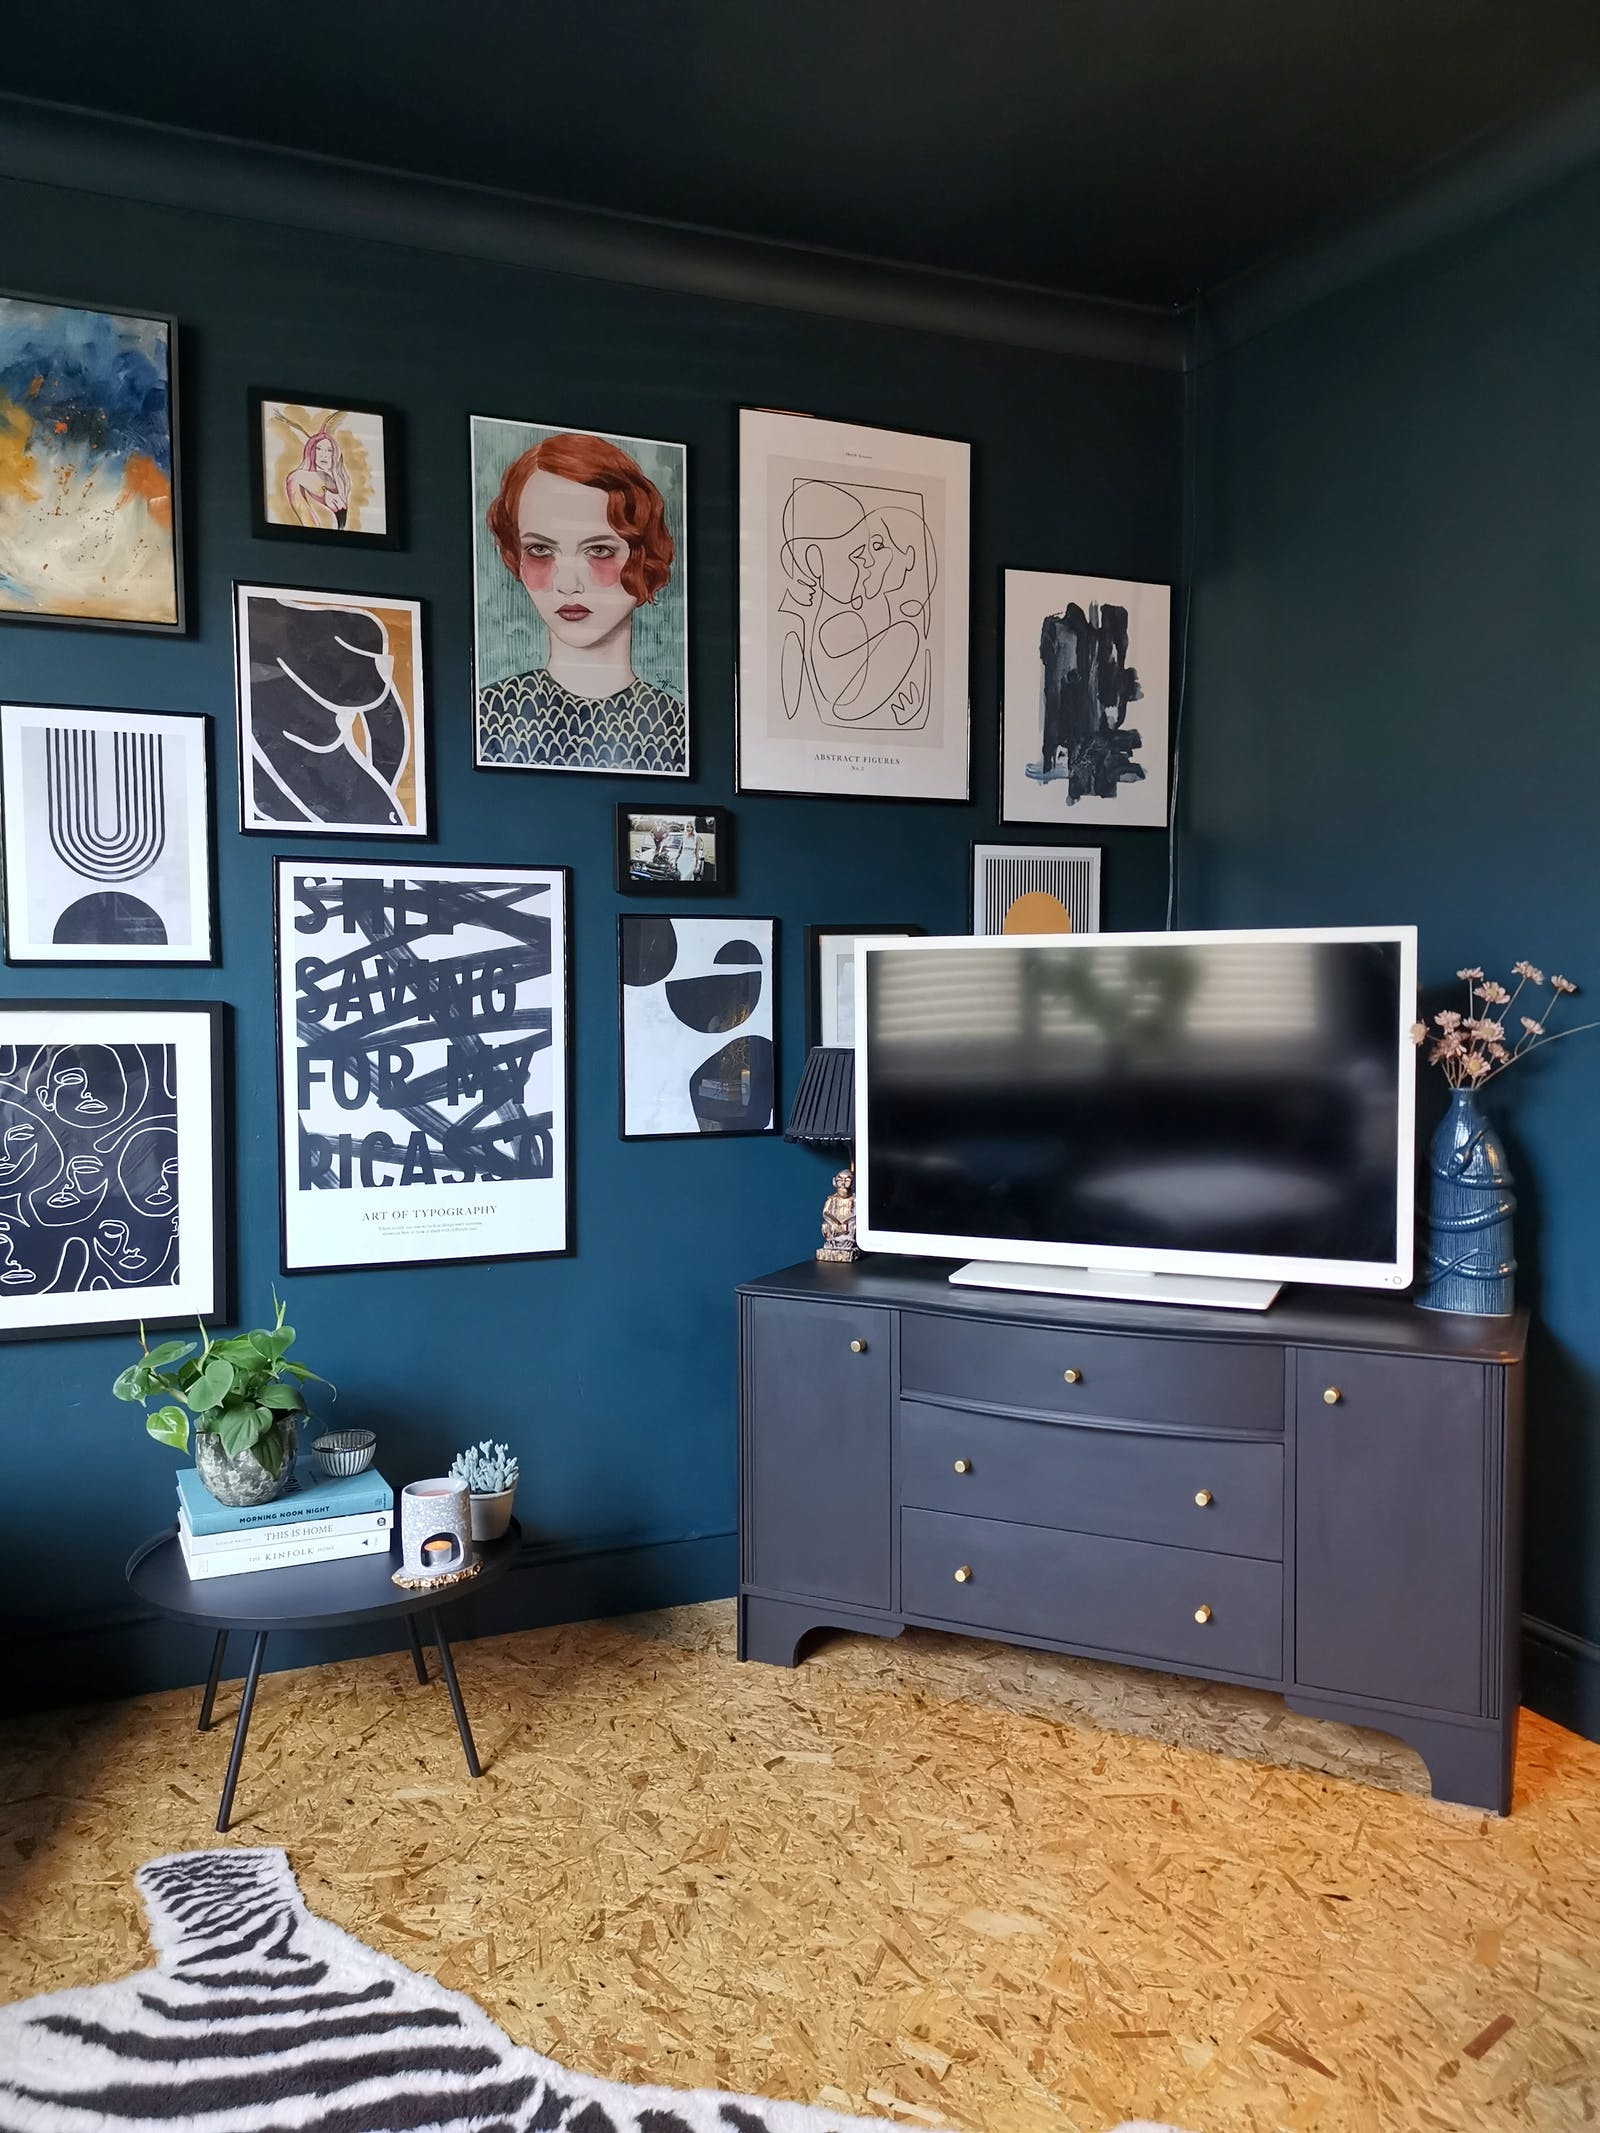 Living room painted in dark blue with a big gallery wall, cork floor and a tv stand with tv